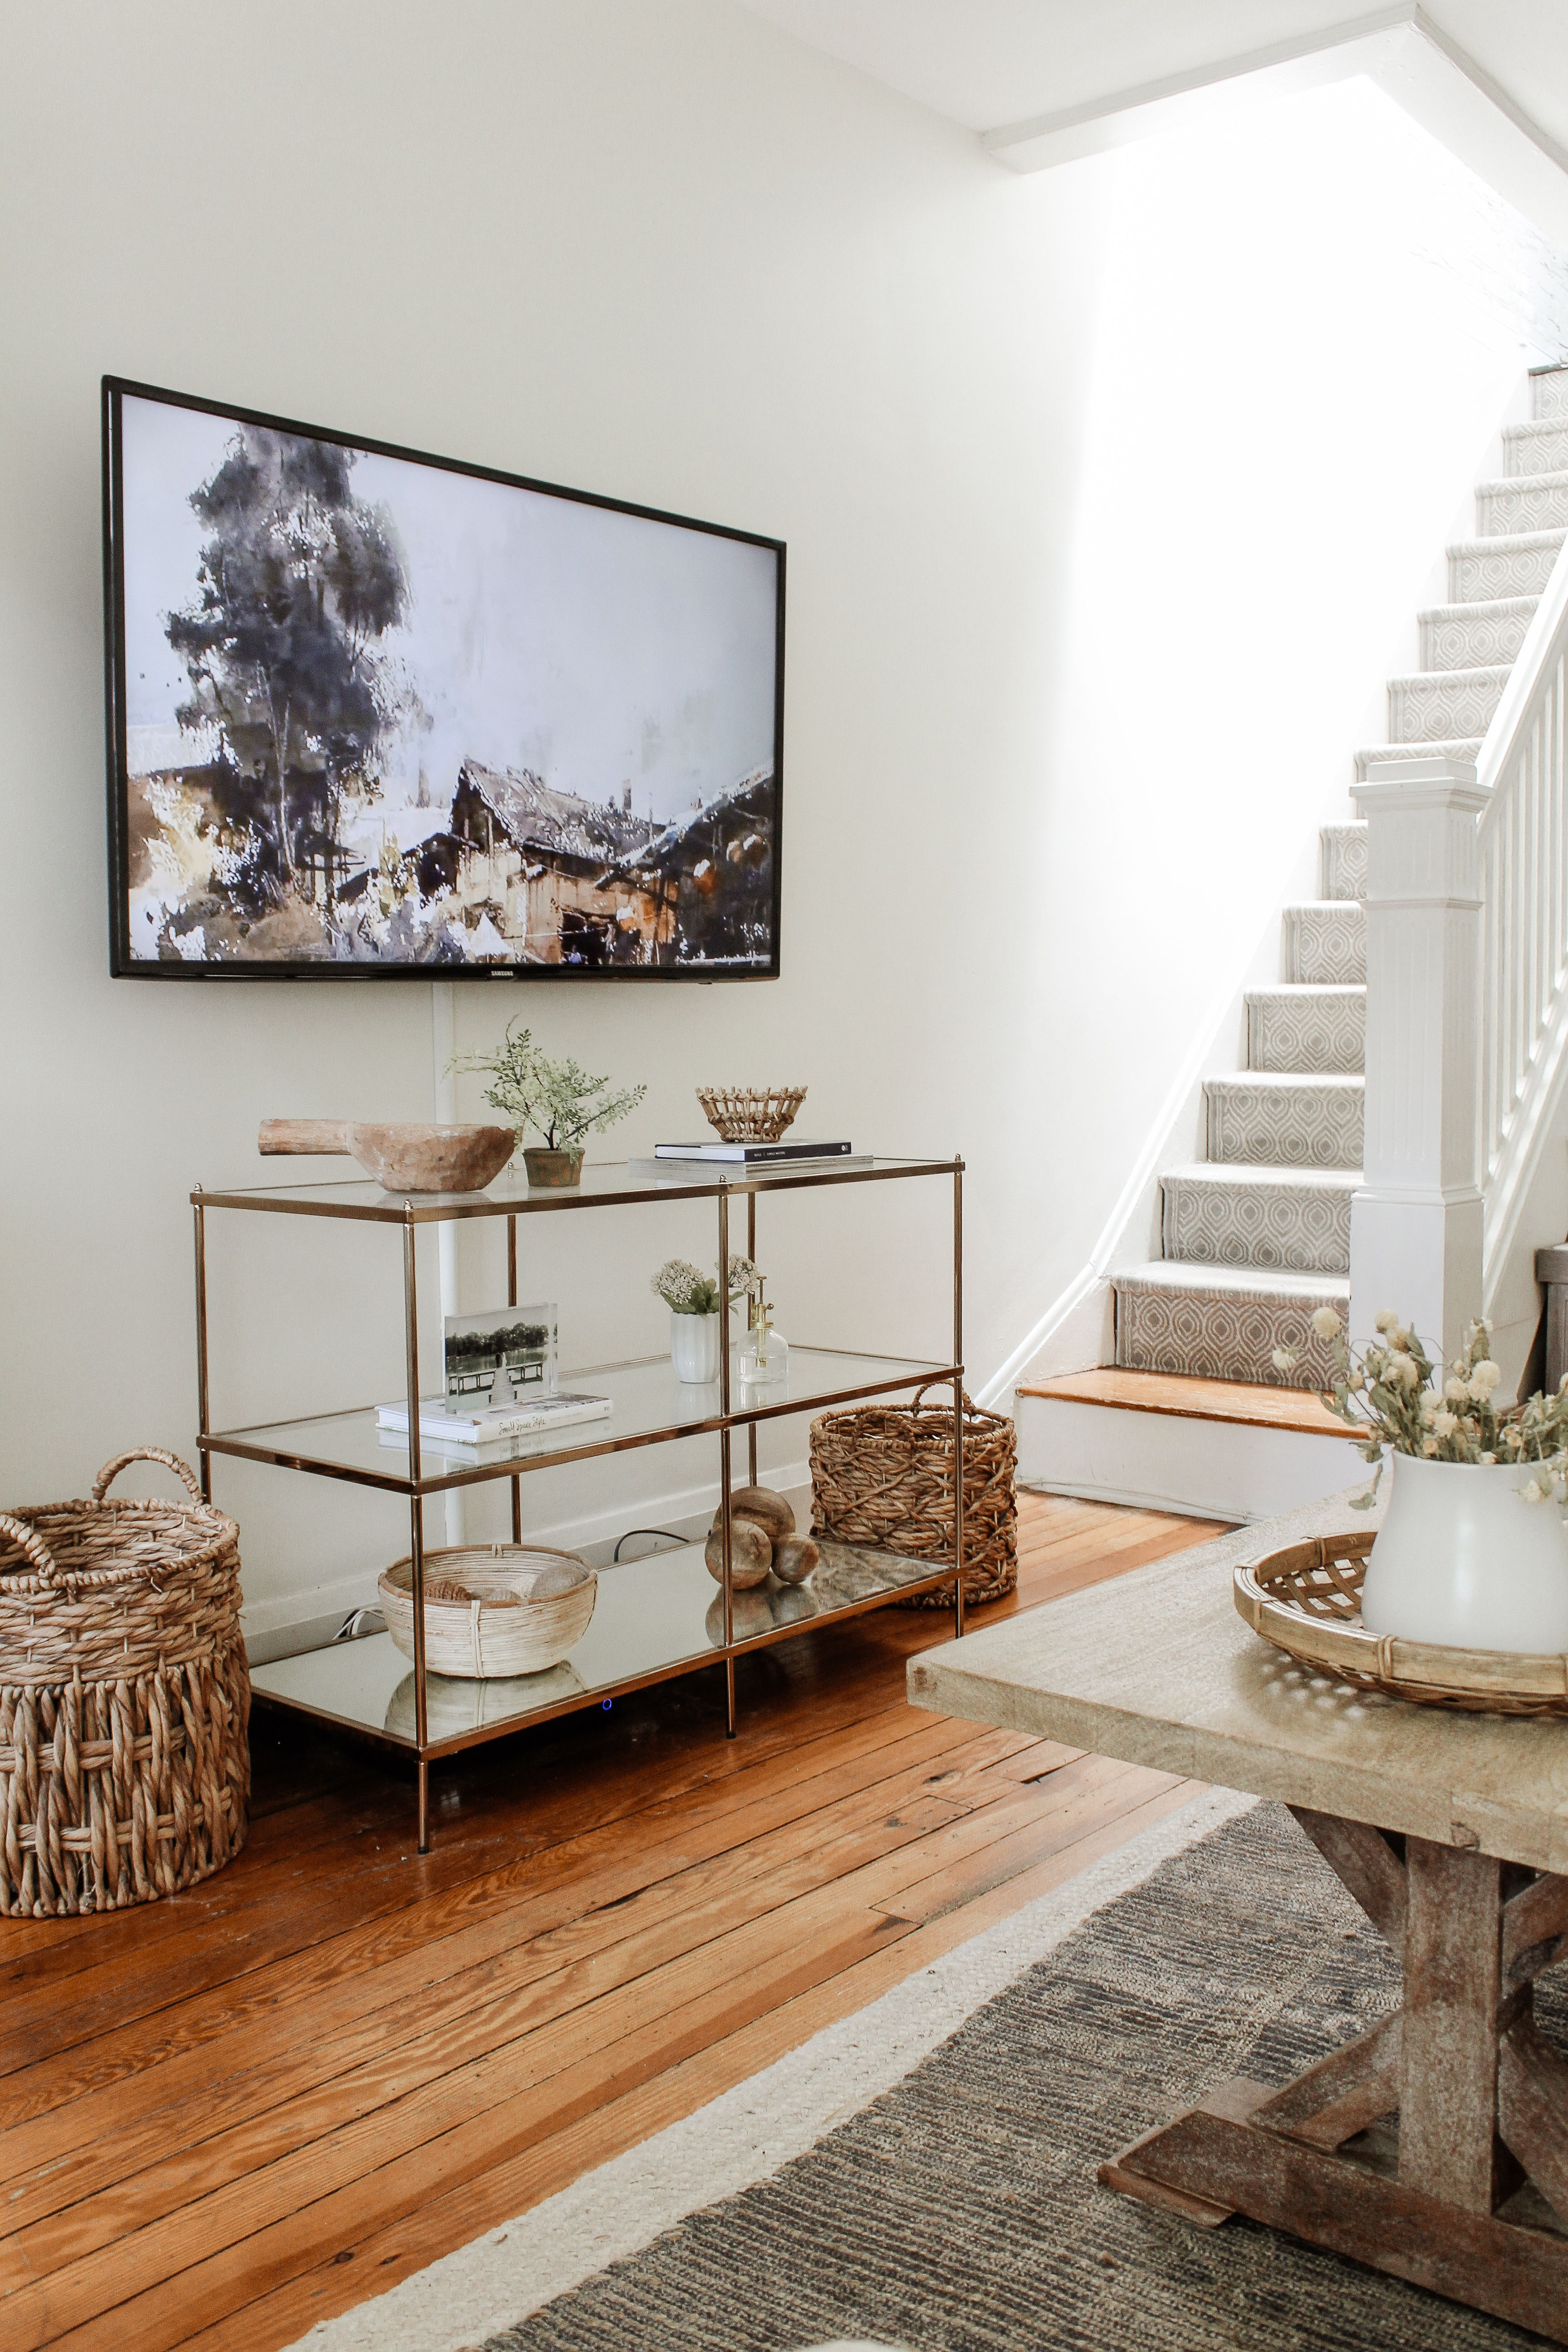 7 Tips For Small Space Living Our City Nest In 2020 Small Space Living Layered Rugs Living Room Small Space Living Room